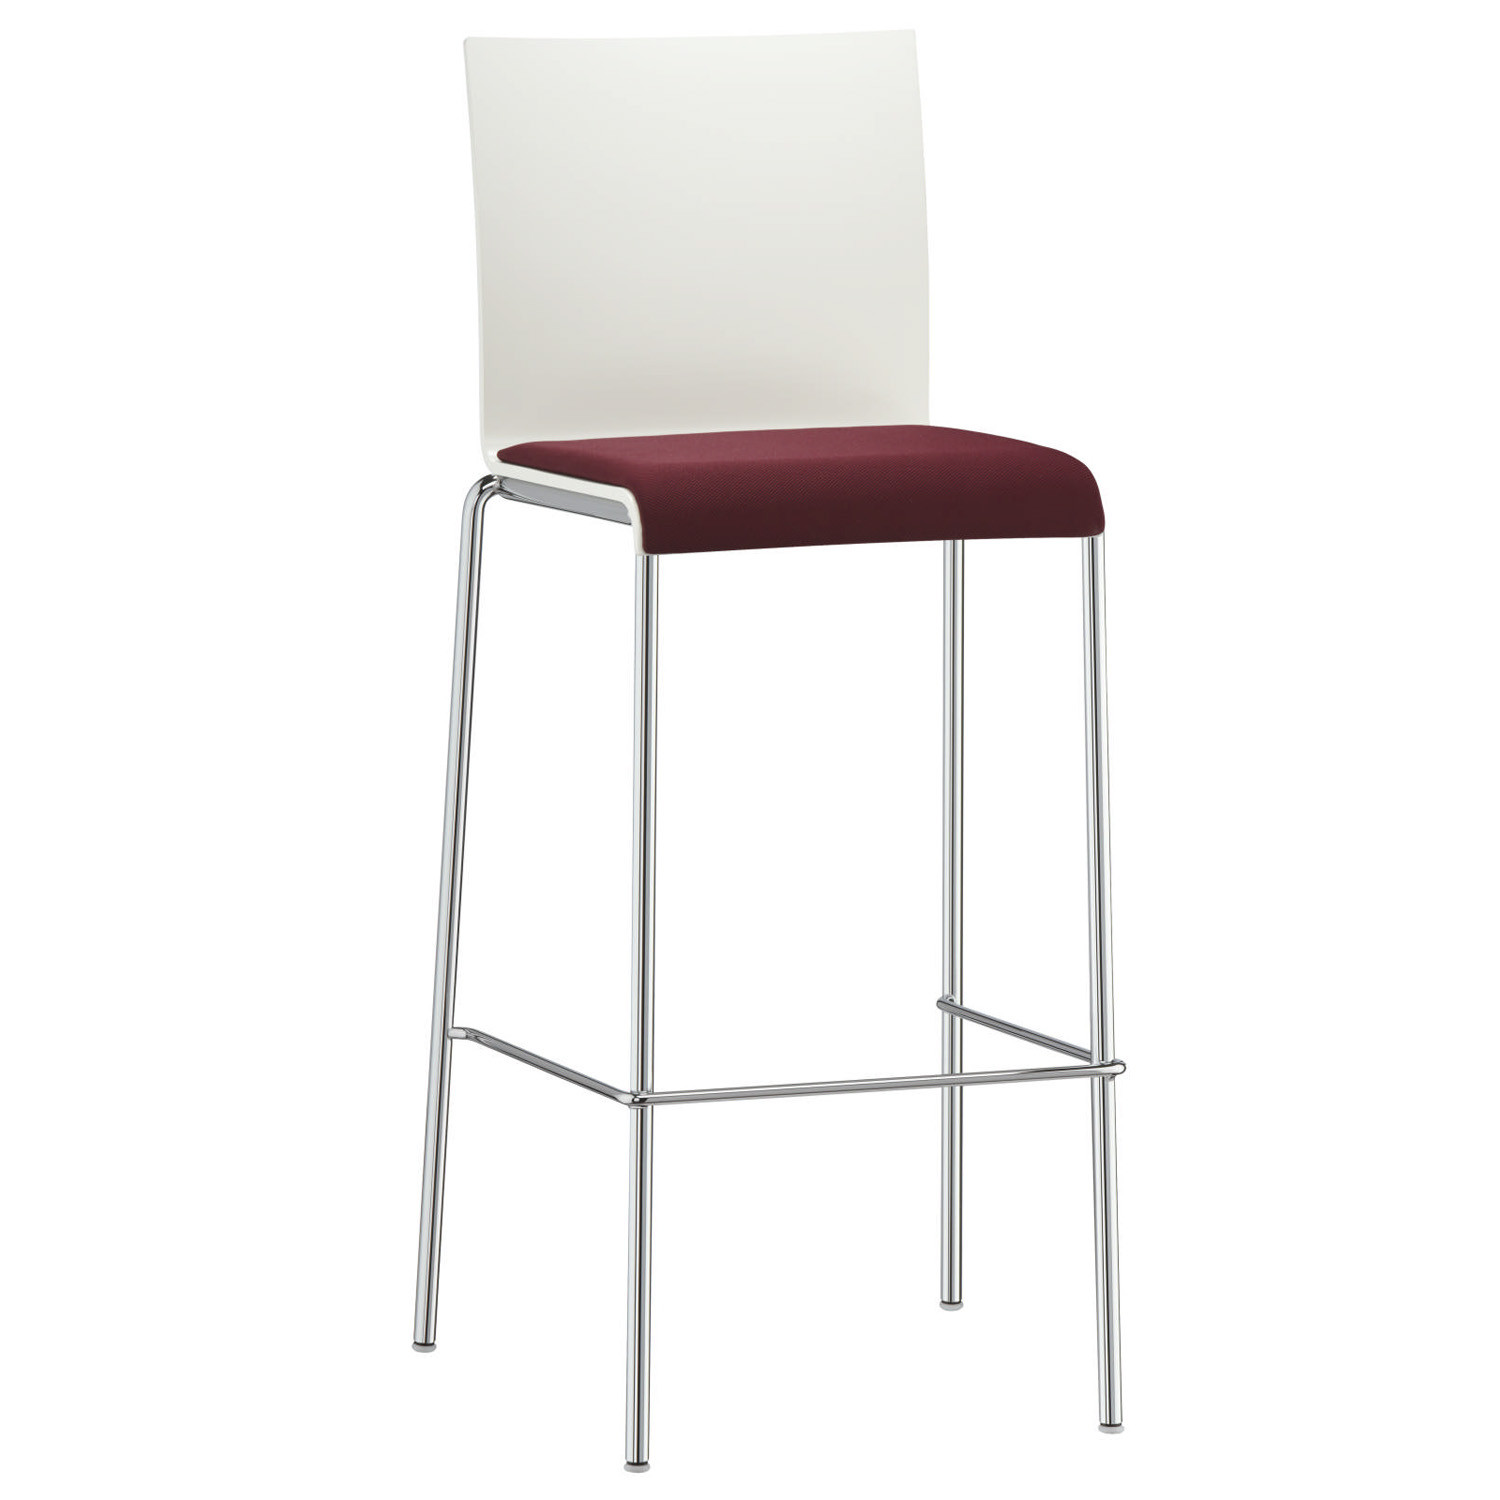 Verona Bar Stool with exta seat upholstery